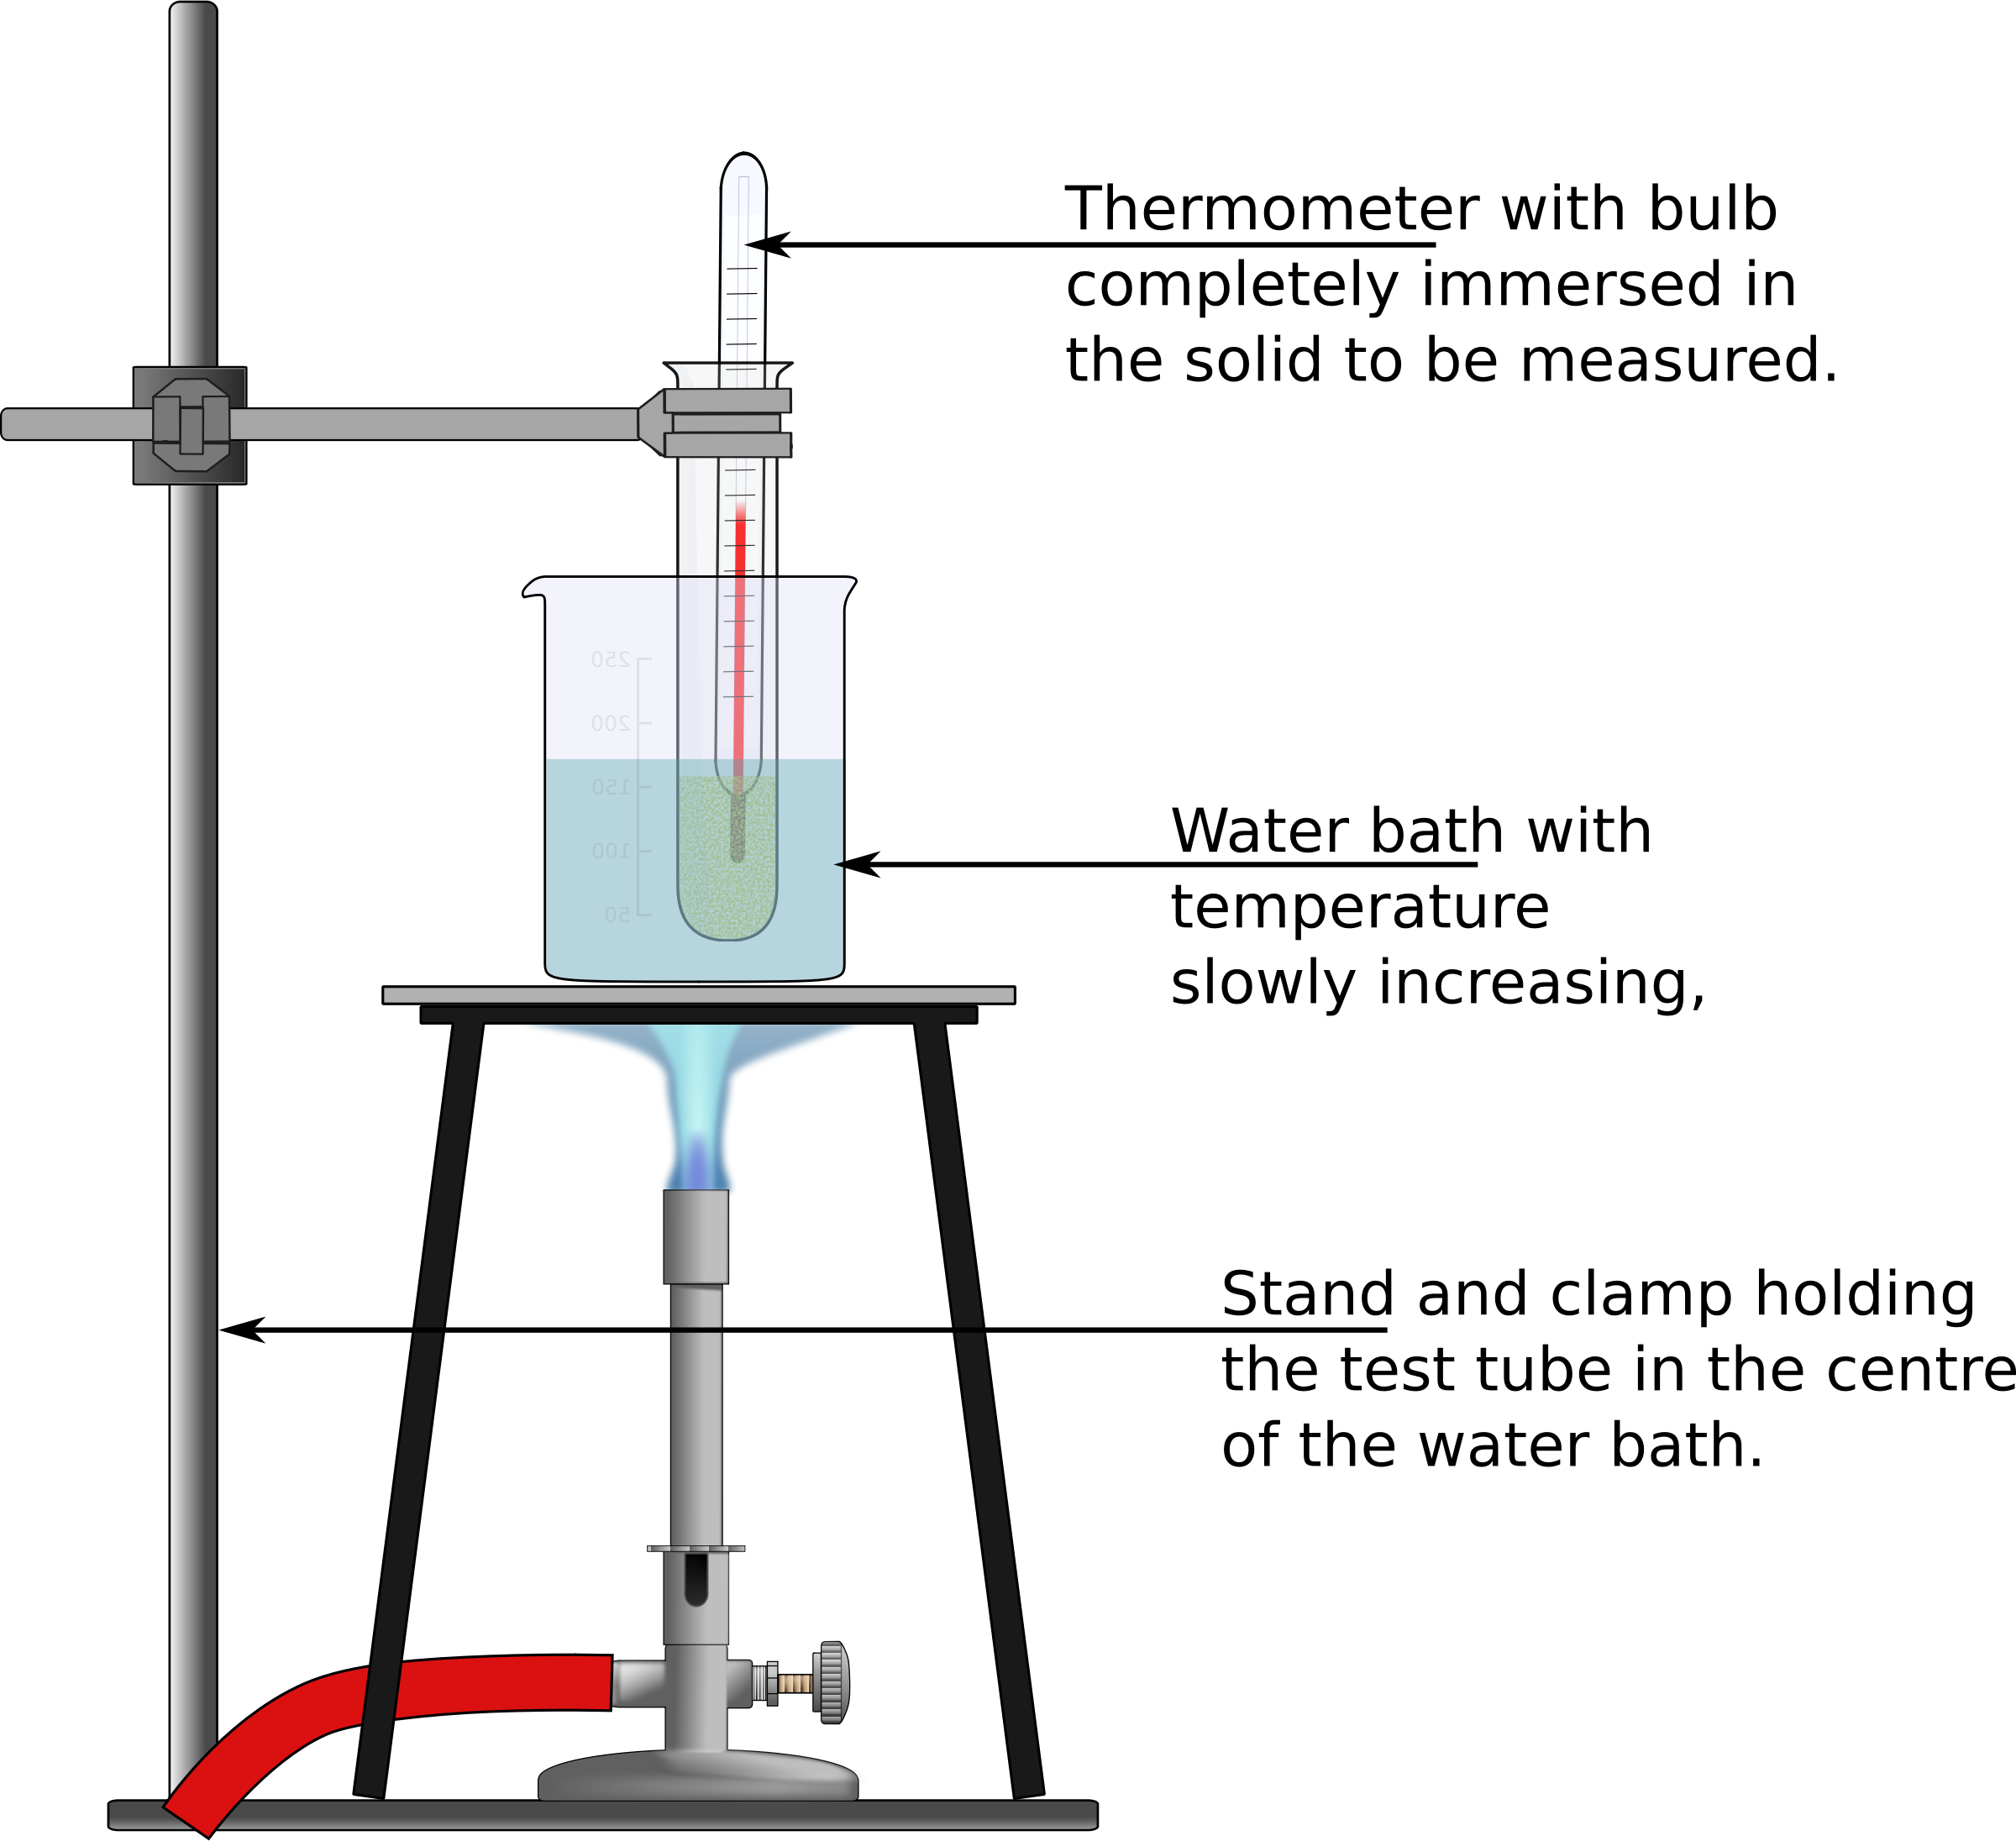 Clipart thermometer laboratory thermometer. Experiment to determine the